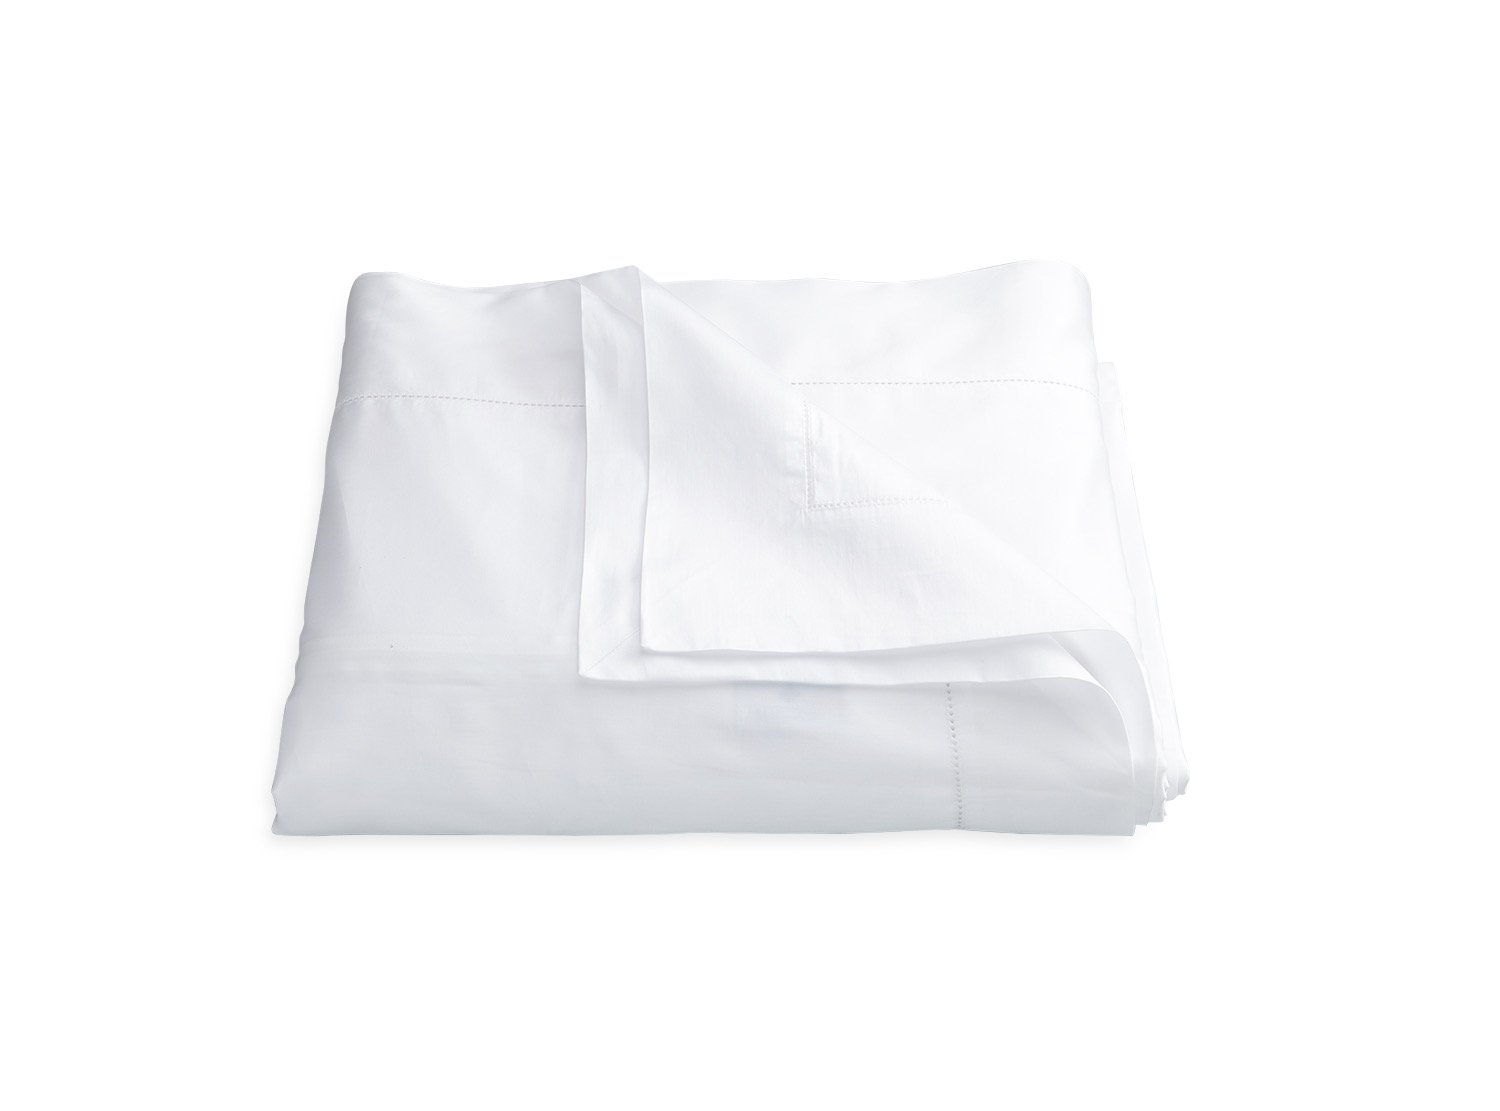 Nocturne Hemstitch White Duvet Cover | Matouk Sateen Bedding